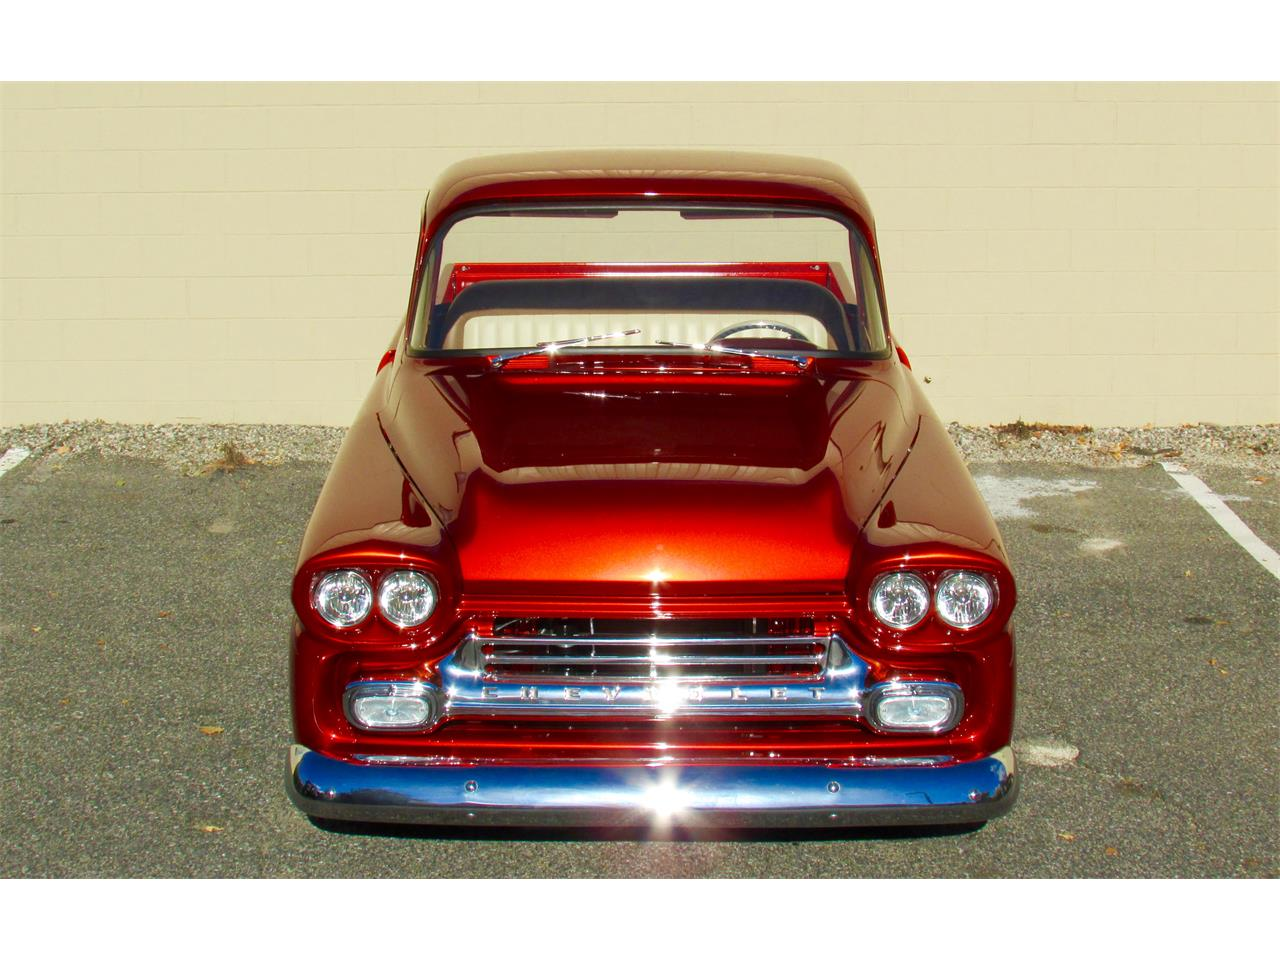 Large Picture of Classic '59 Fleetside Custom Pickup Truck  located in Massachusetts - $169,000.00 Offered by a Private Seller - JPTV